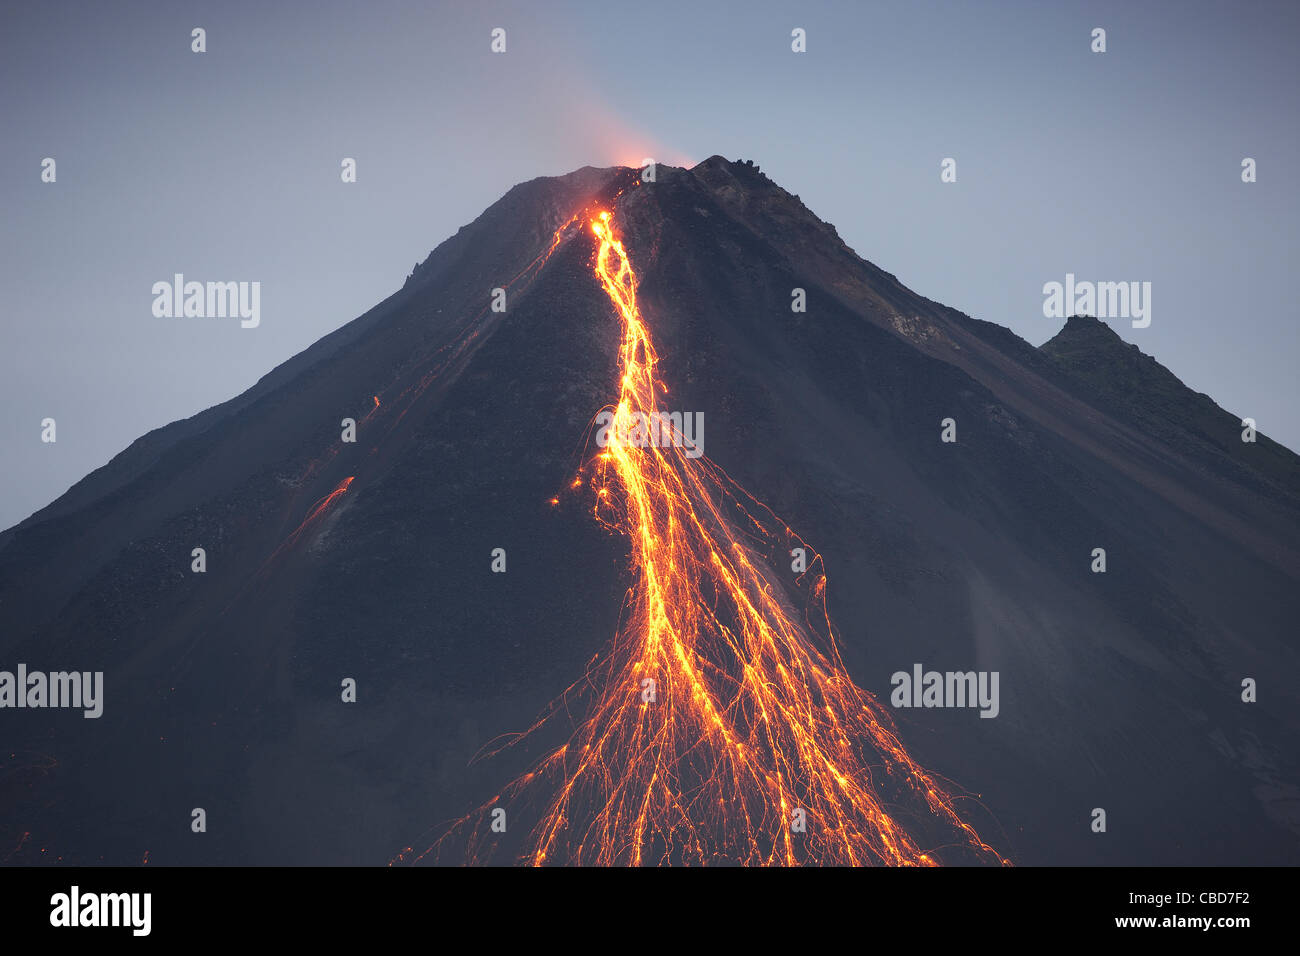 Lava pouring out of volcano - Stock Image